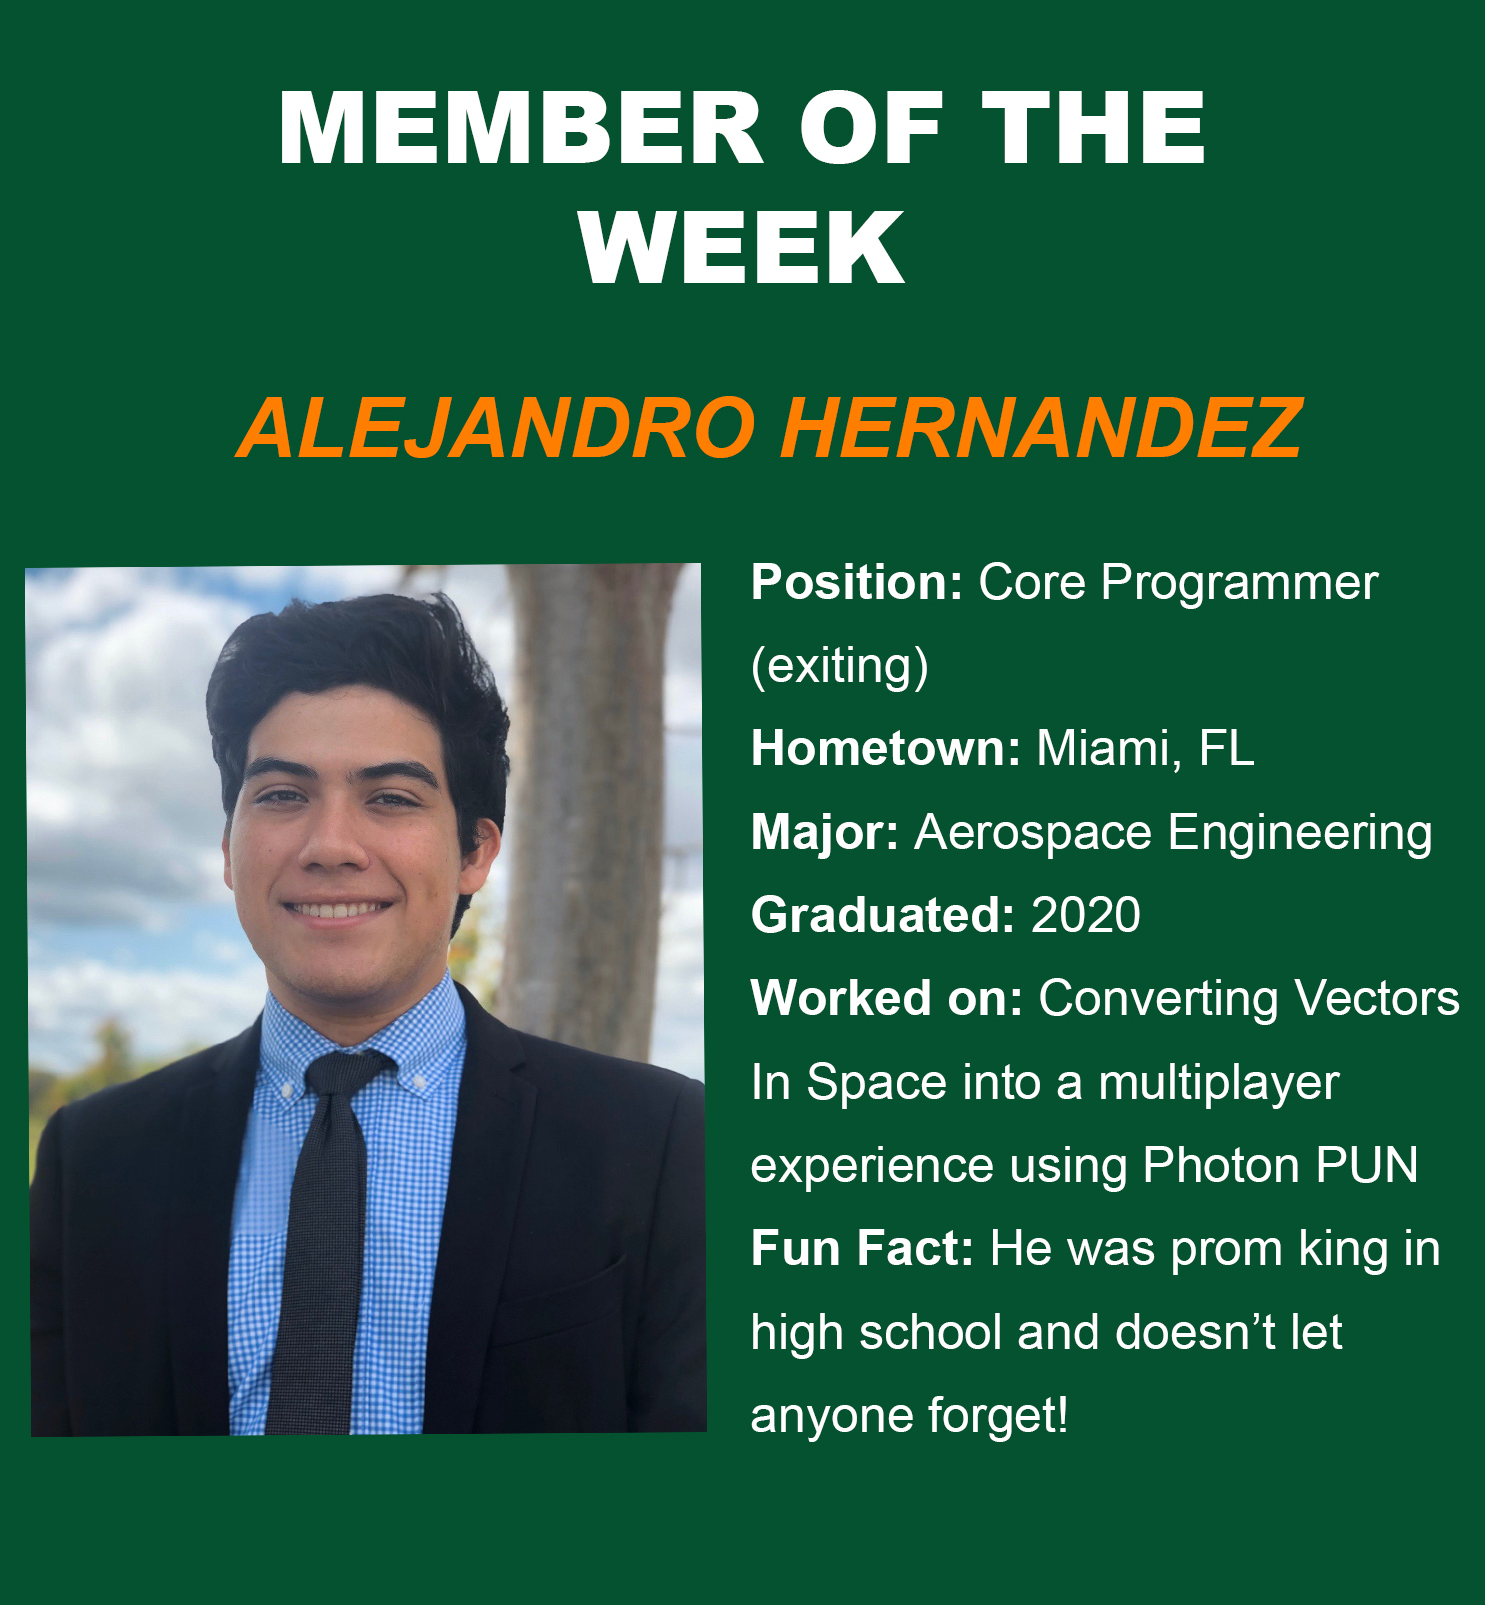 alejandro, member of the week